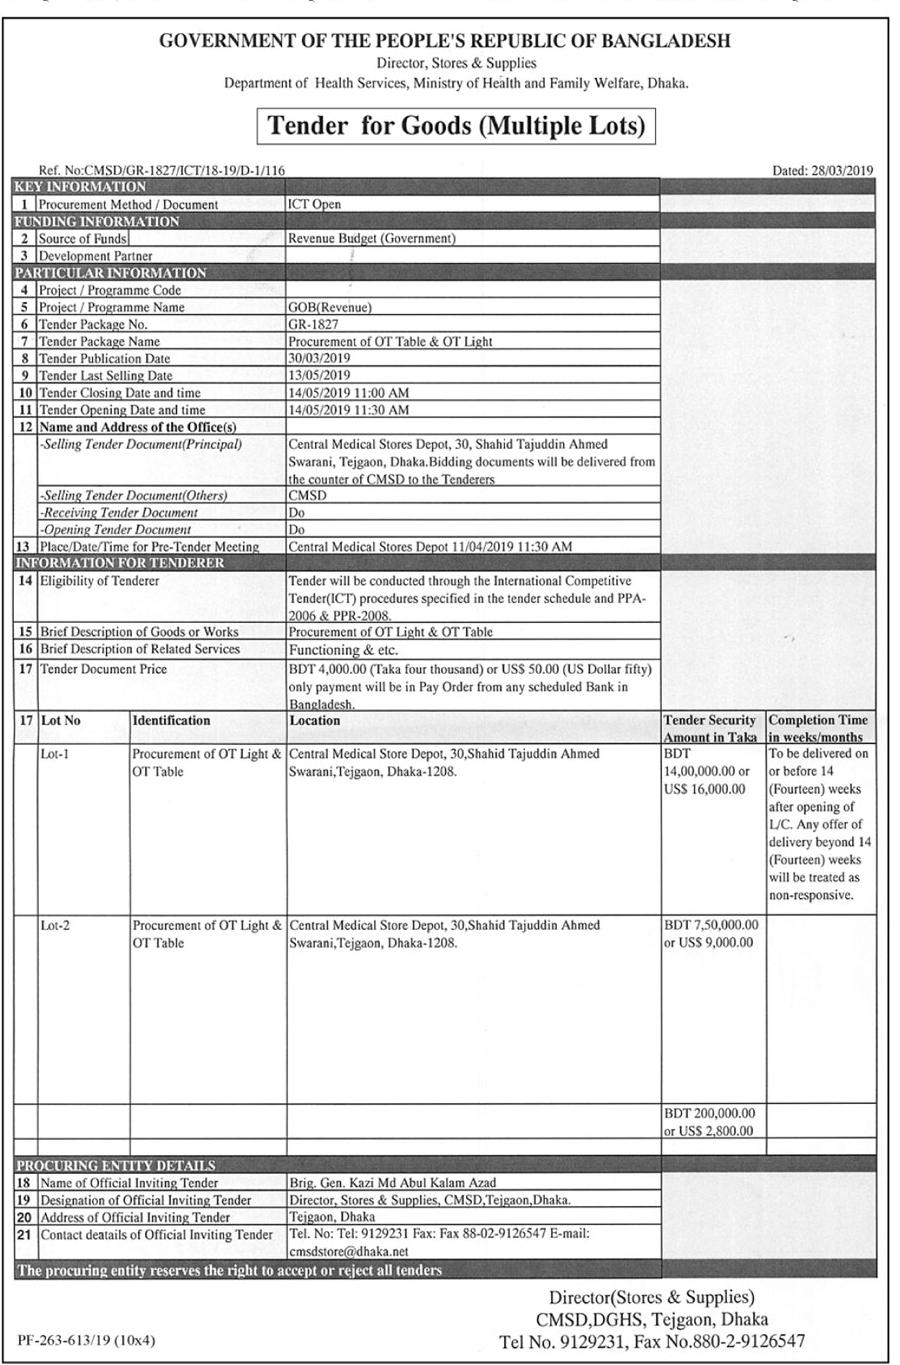 Tender for Goods (Multiple Lots) - Mar 29, কালের